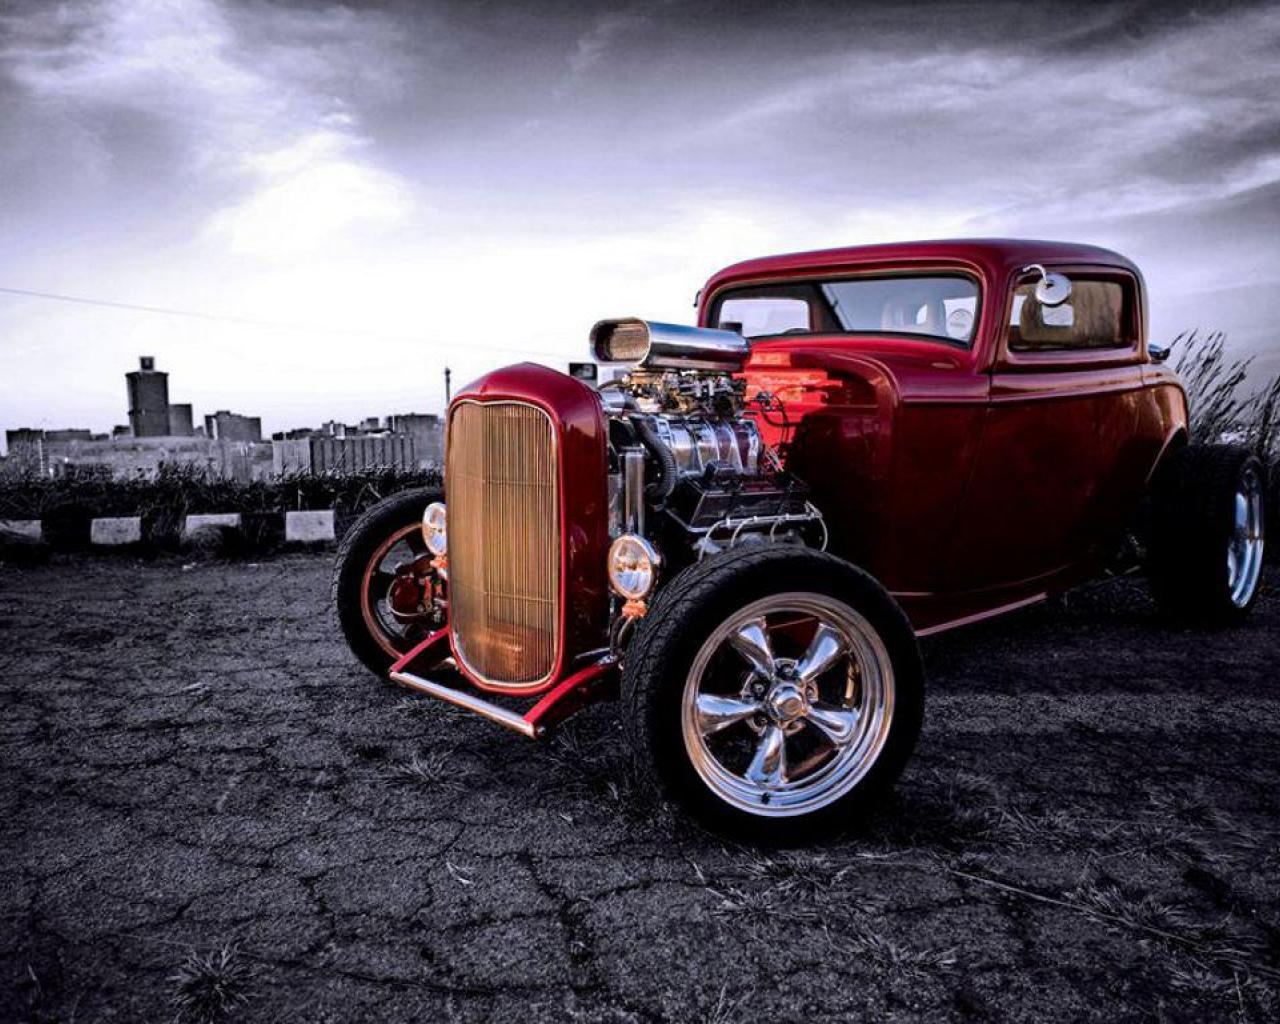 Hot rod   154621   High Quality and Resolution Wallpapers on 1280x1024